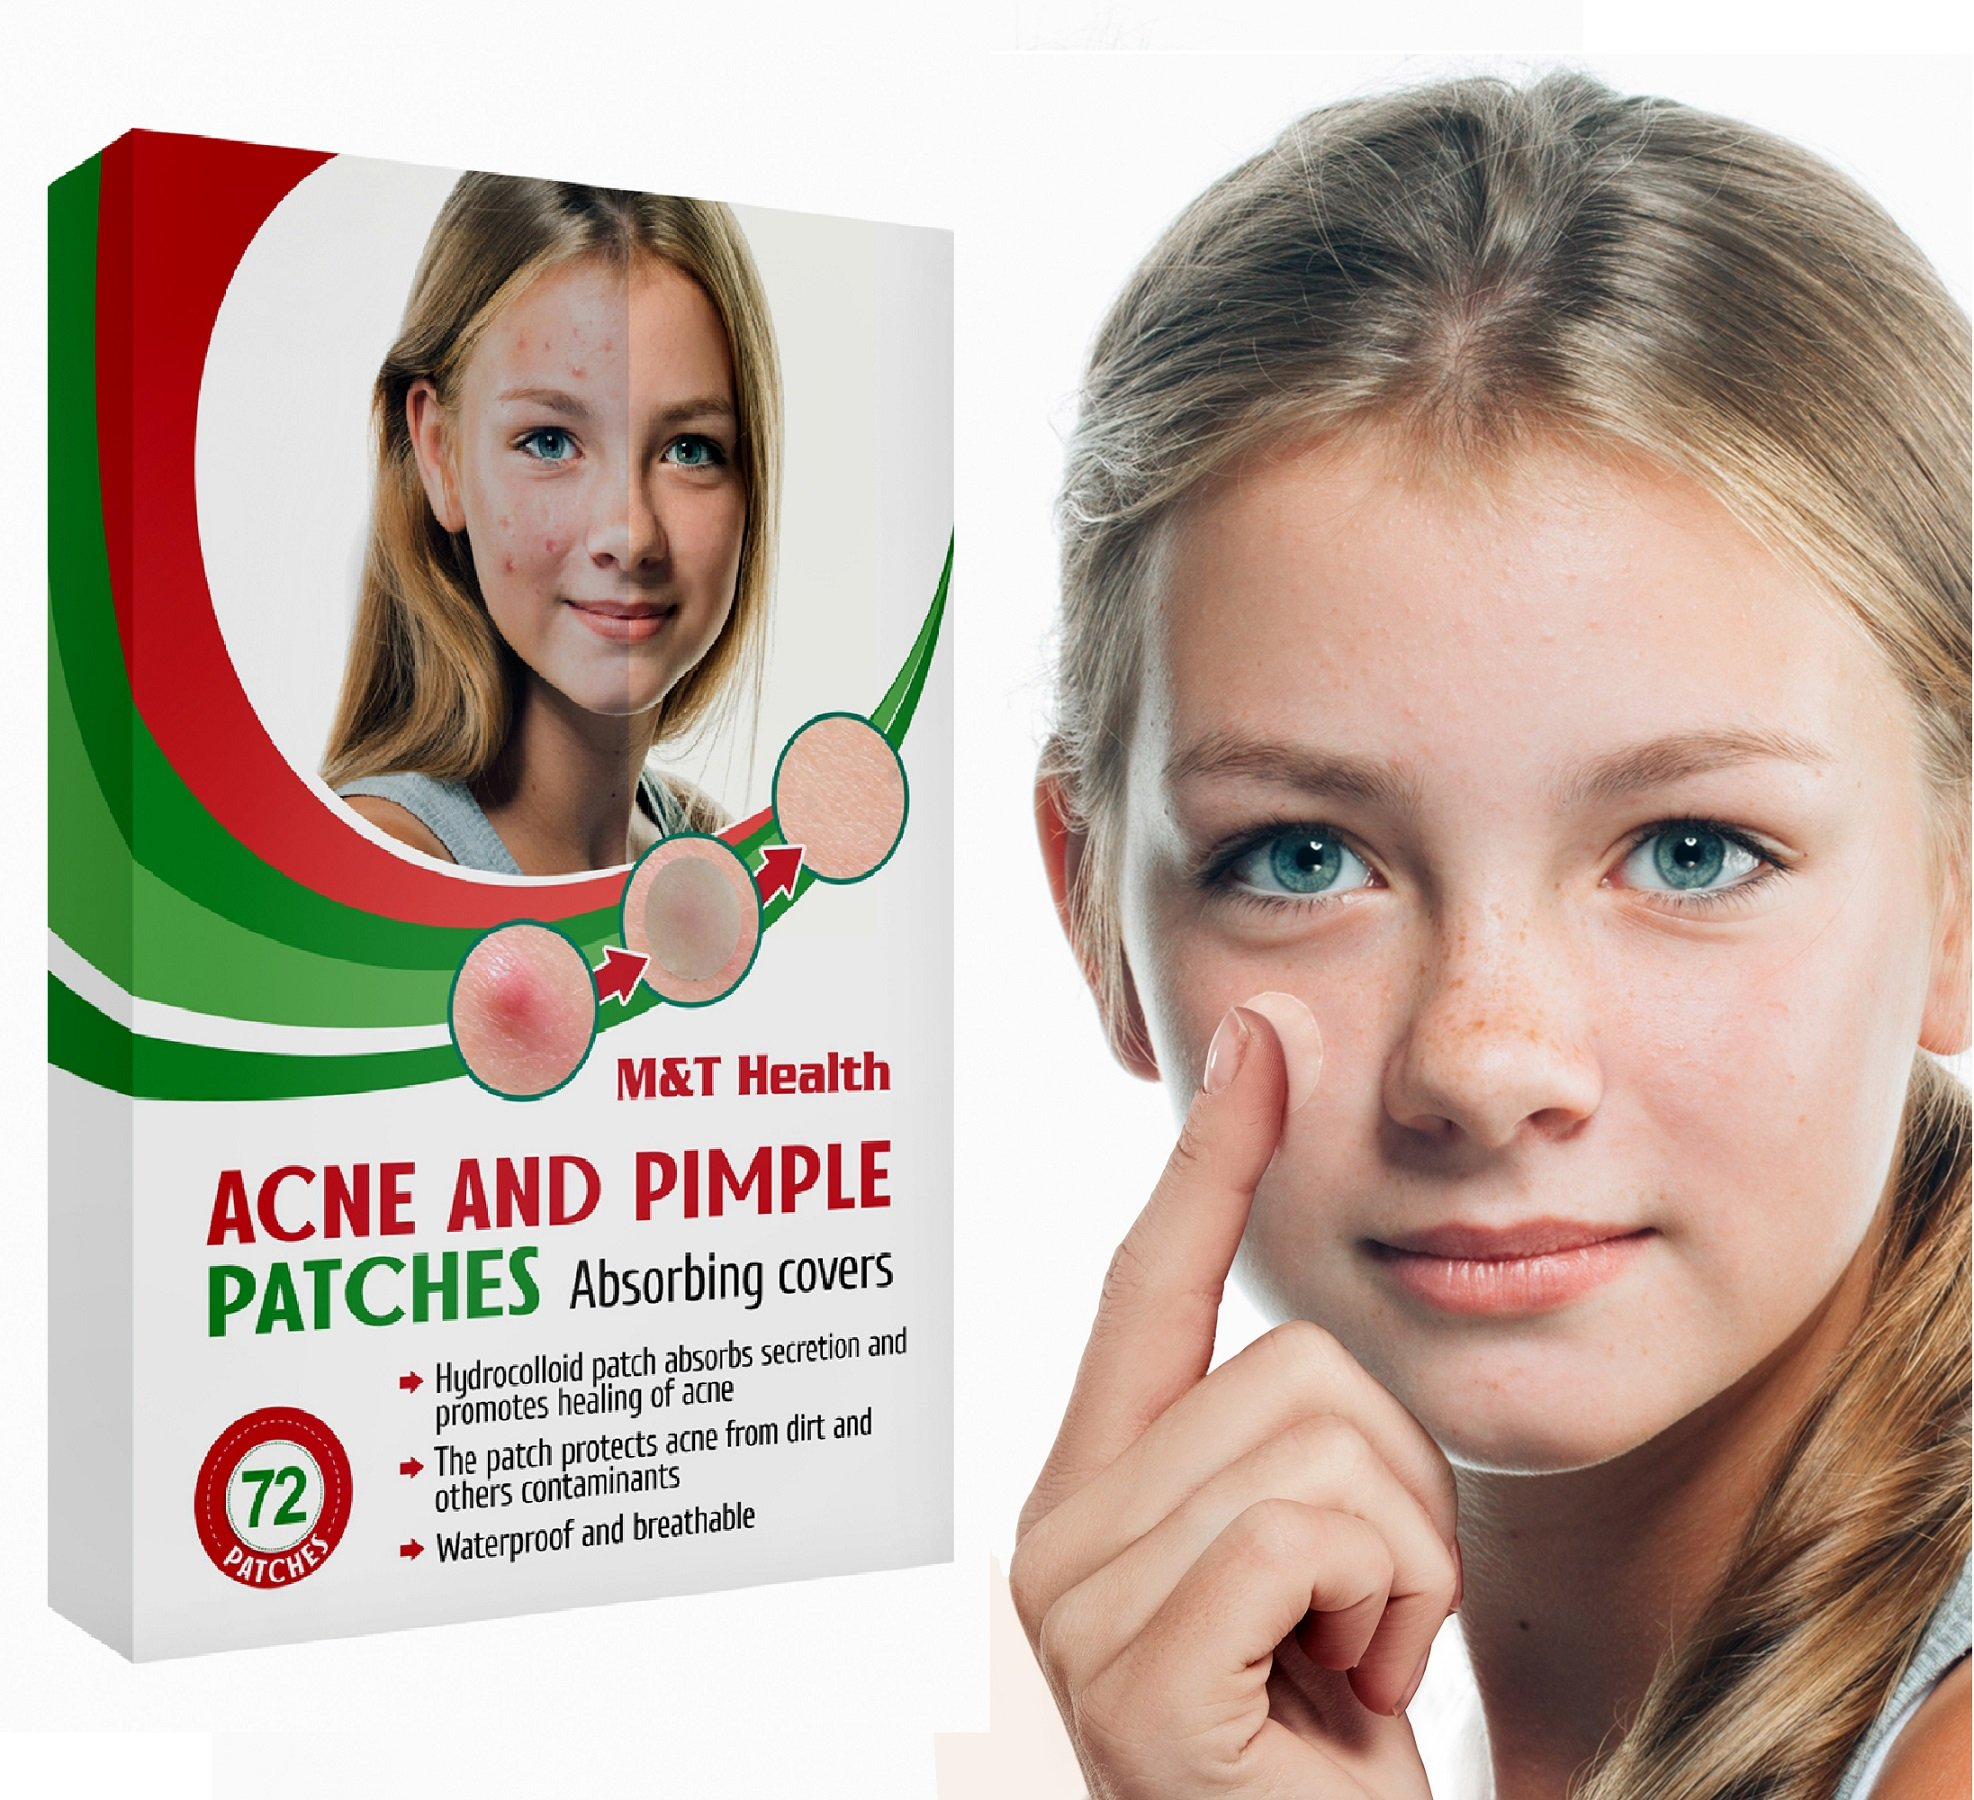 Acne Pimple Patch Hydrocolloid Bandages - 72 Count Acne Pimple Master Patch - Cosmetic Acne Patch For Face - Age Acne Treatment For Teens